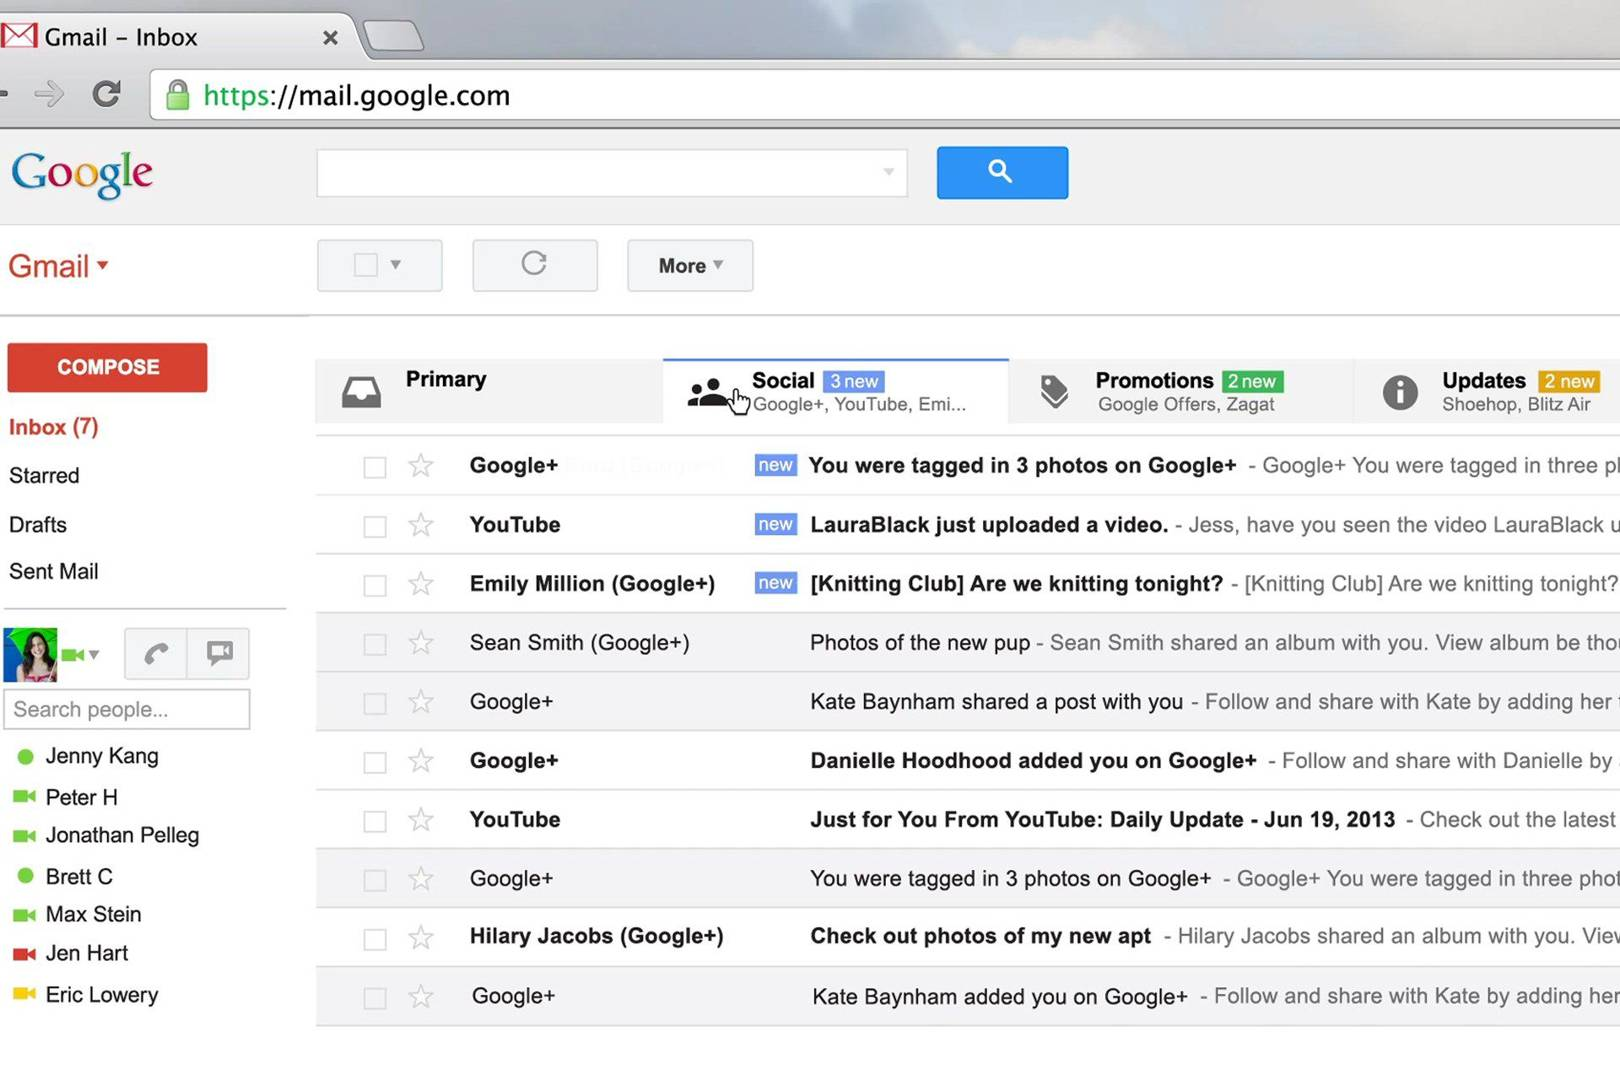 Watch How to Check Your Gmail Account with the Google Toolbar video